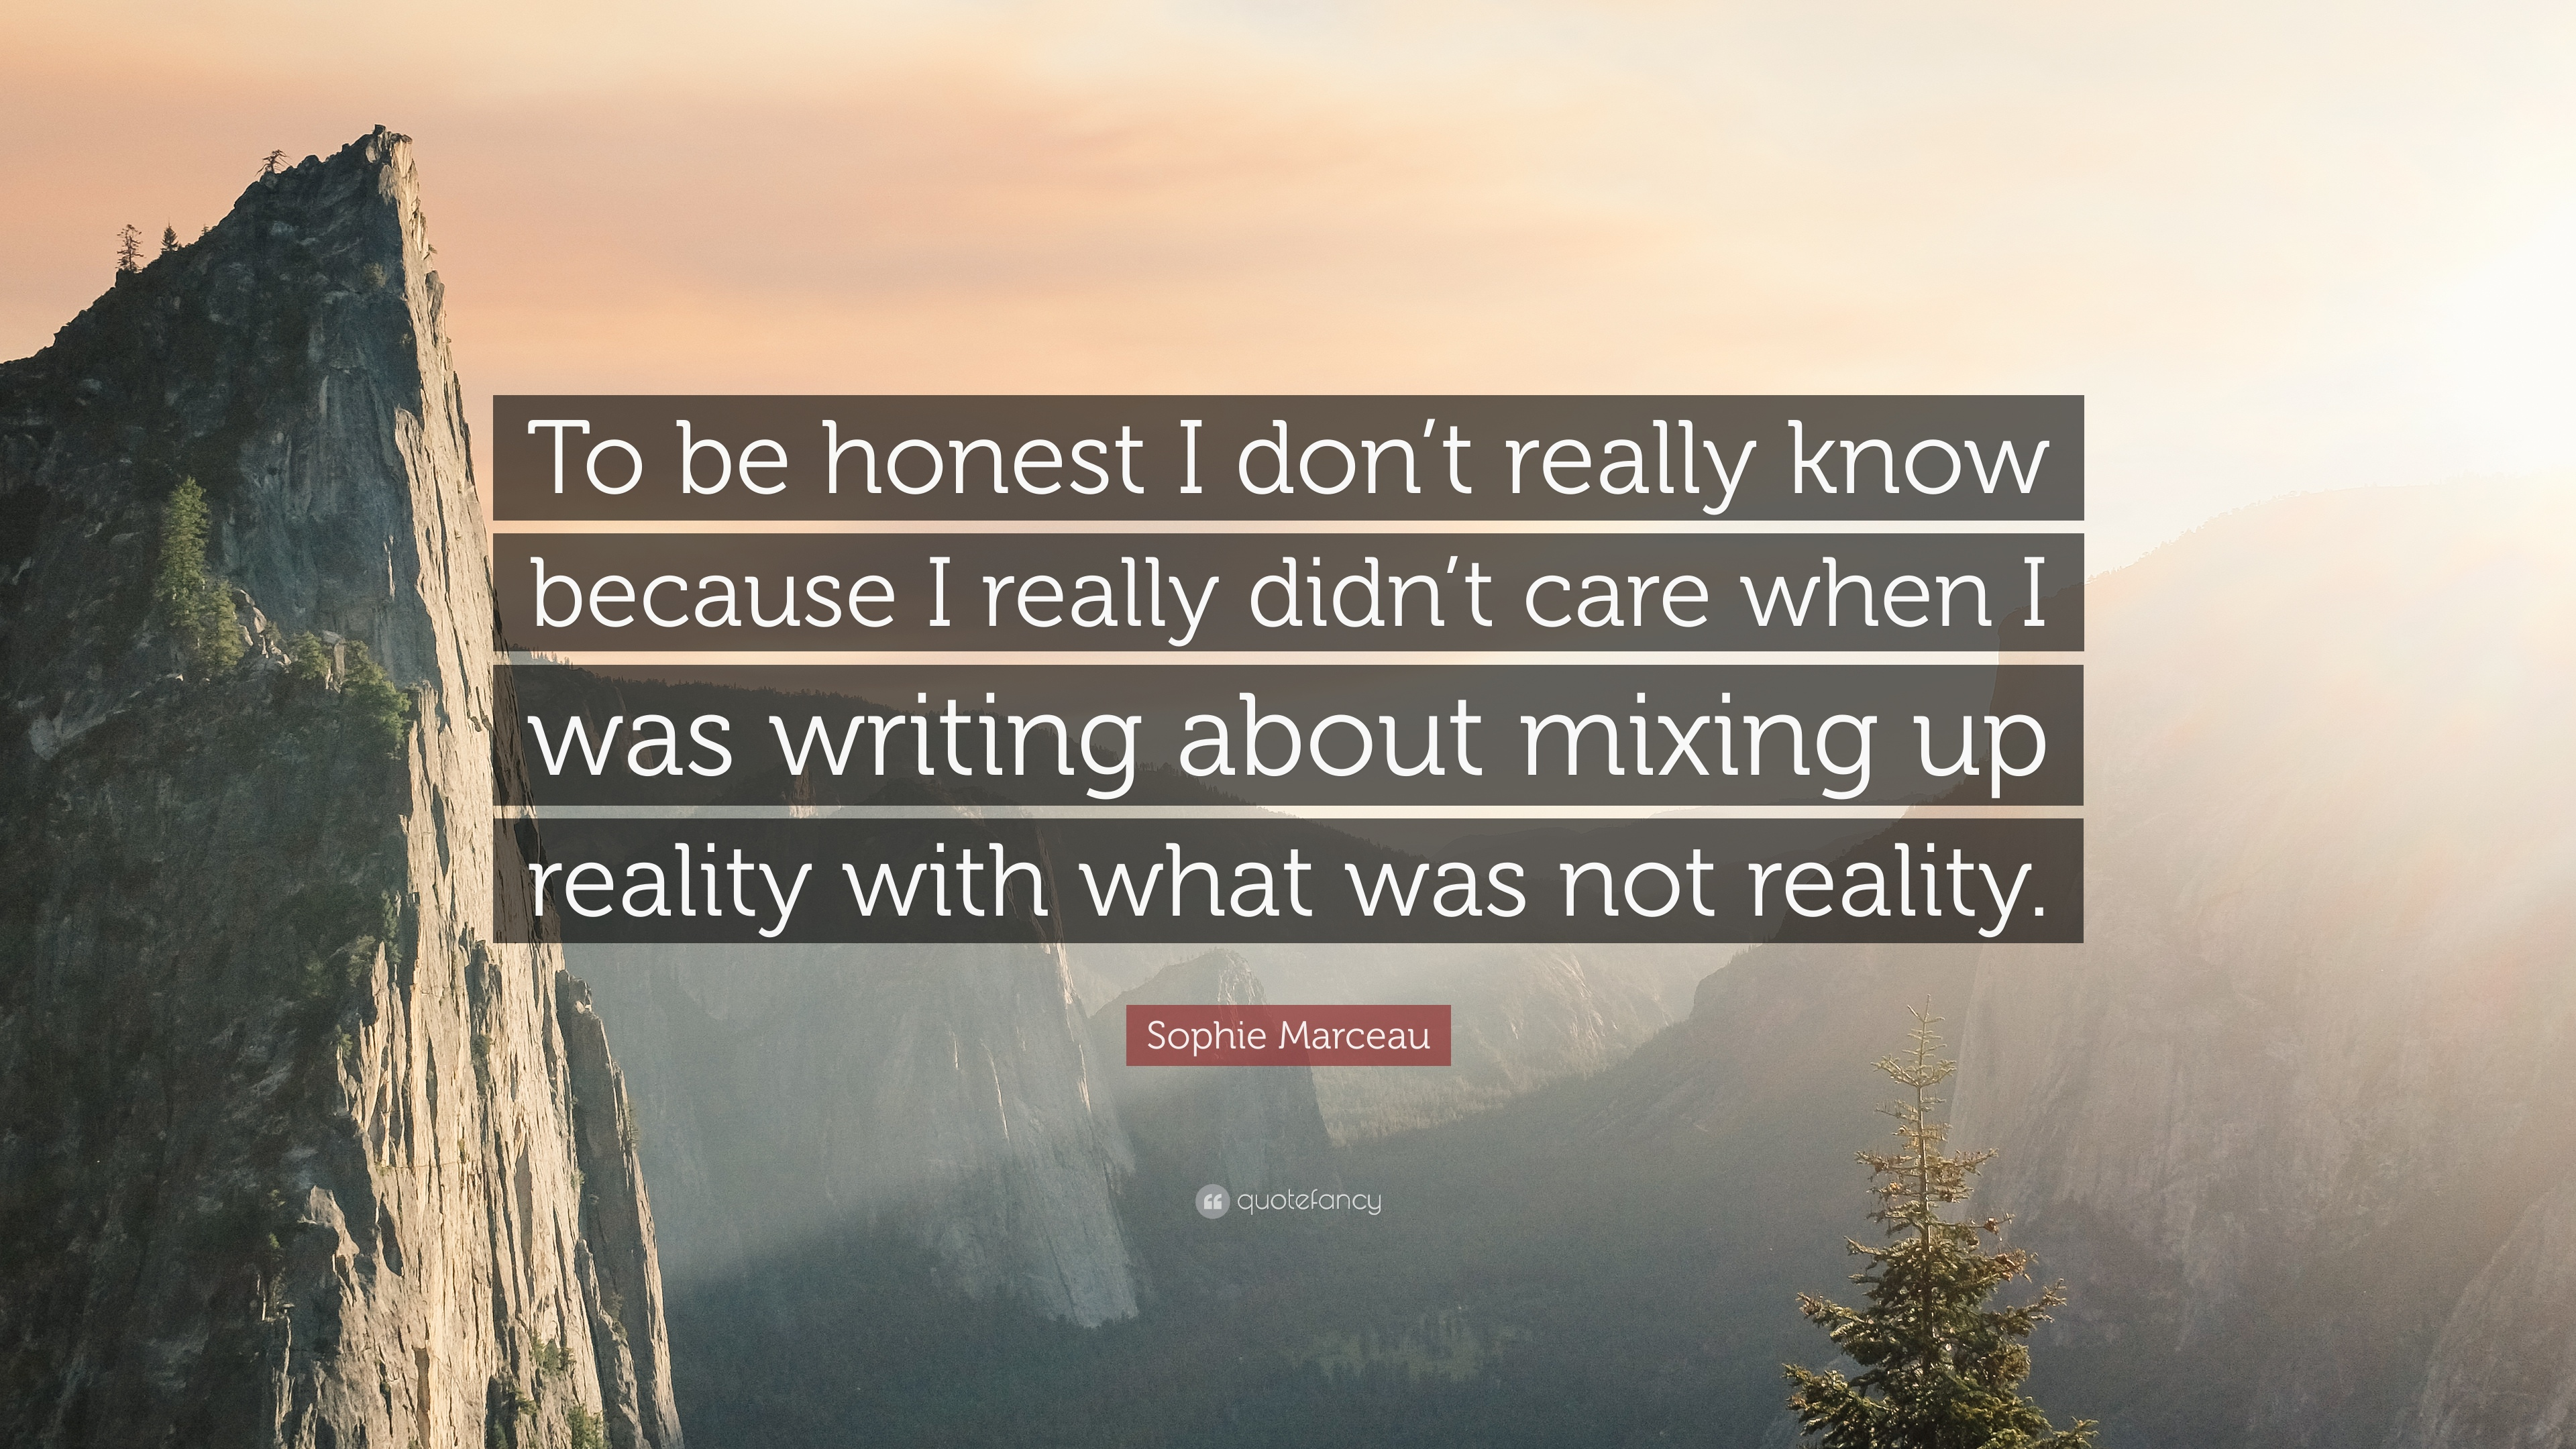 Sophie Marceau Quote To Be Honest I Don T Really Know Because I Really Didn T Care When I Was Writing About Mixing Up Reality With What Was N 7 Wallpapers Quotefancy